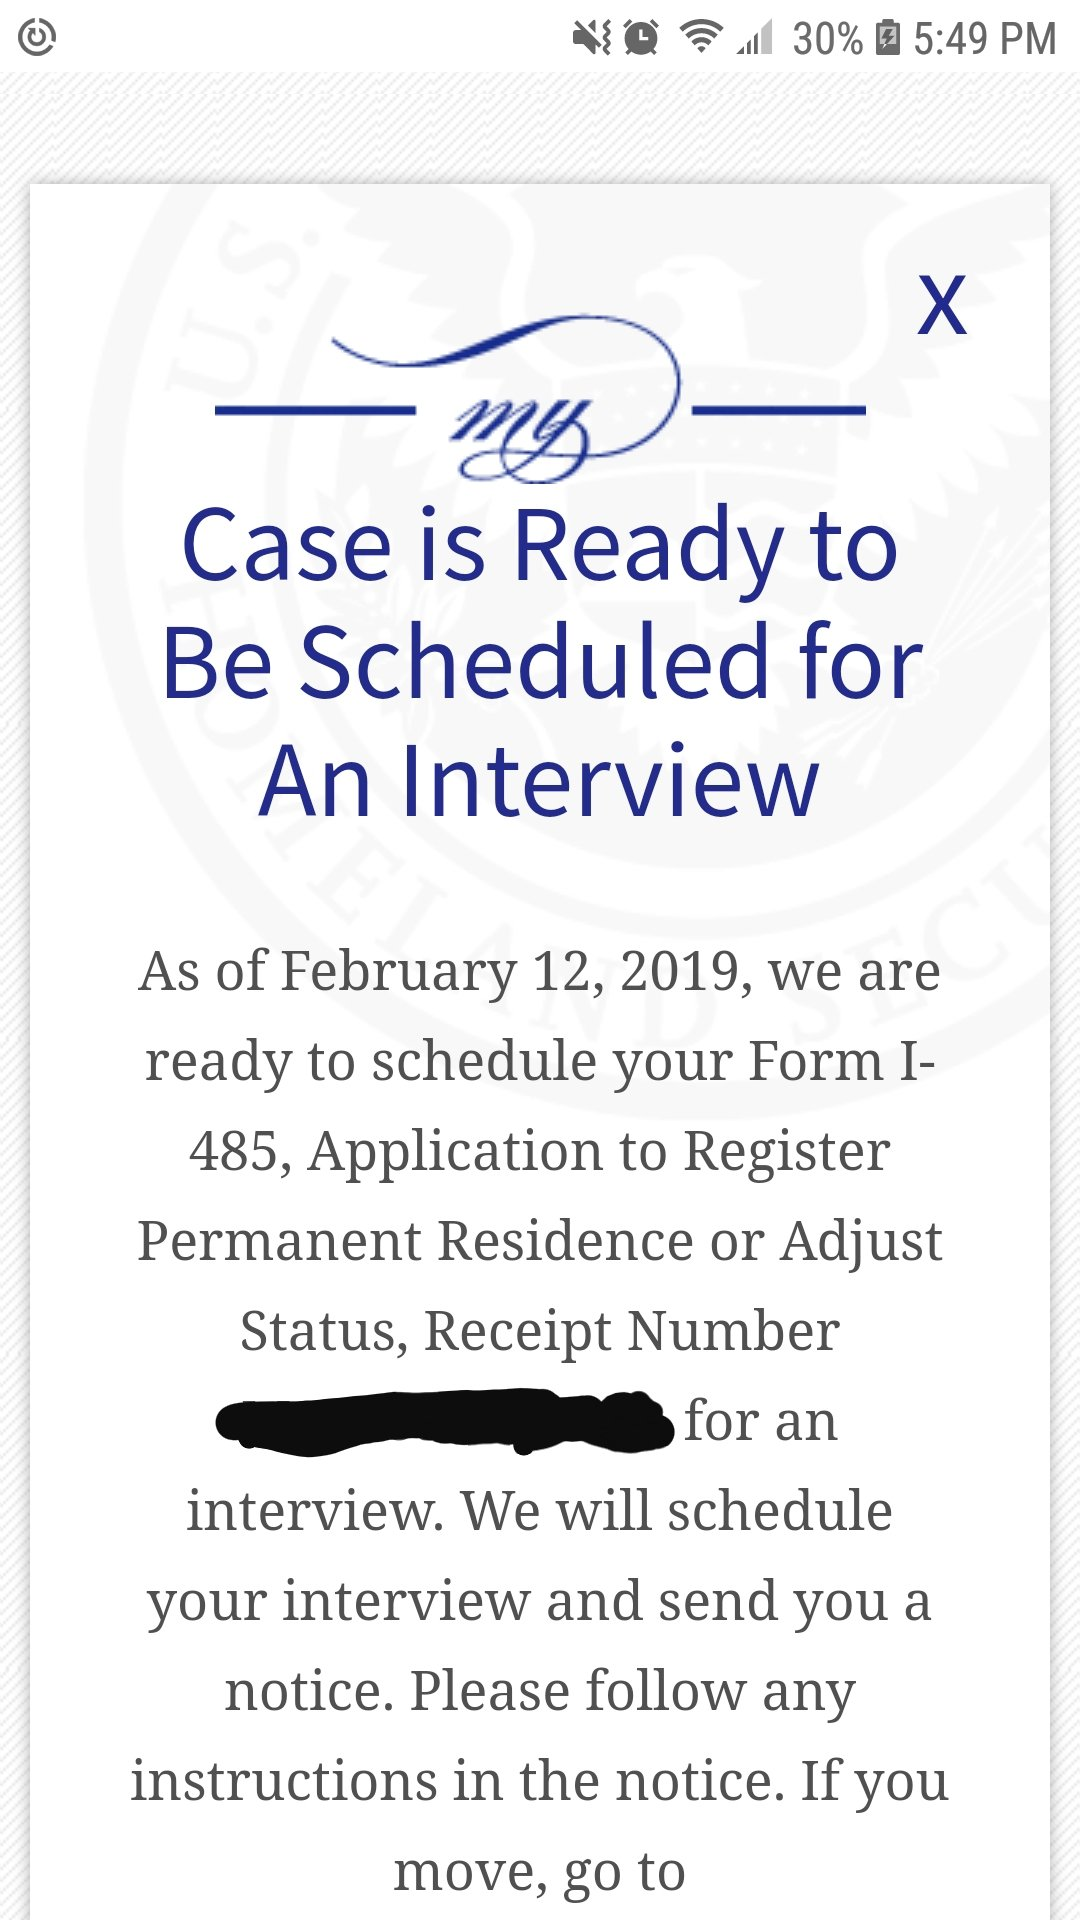 Documents received by uscis September 20, 2018 still no EAD